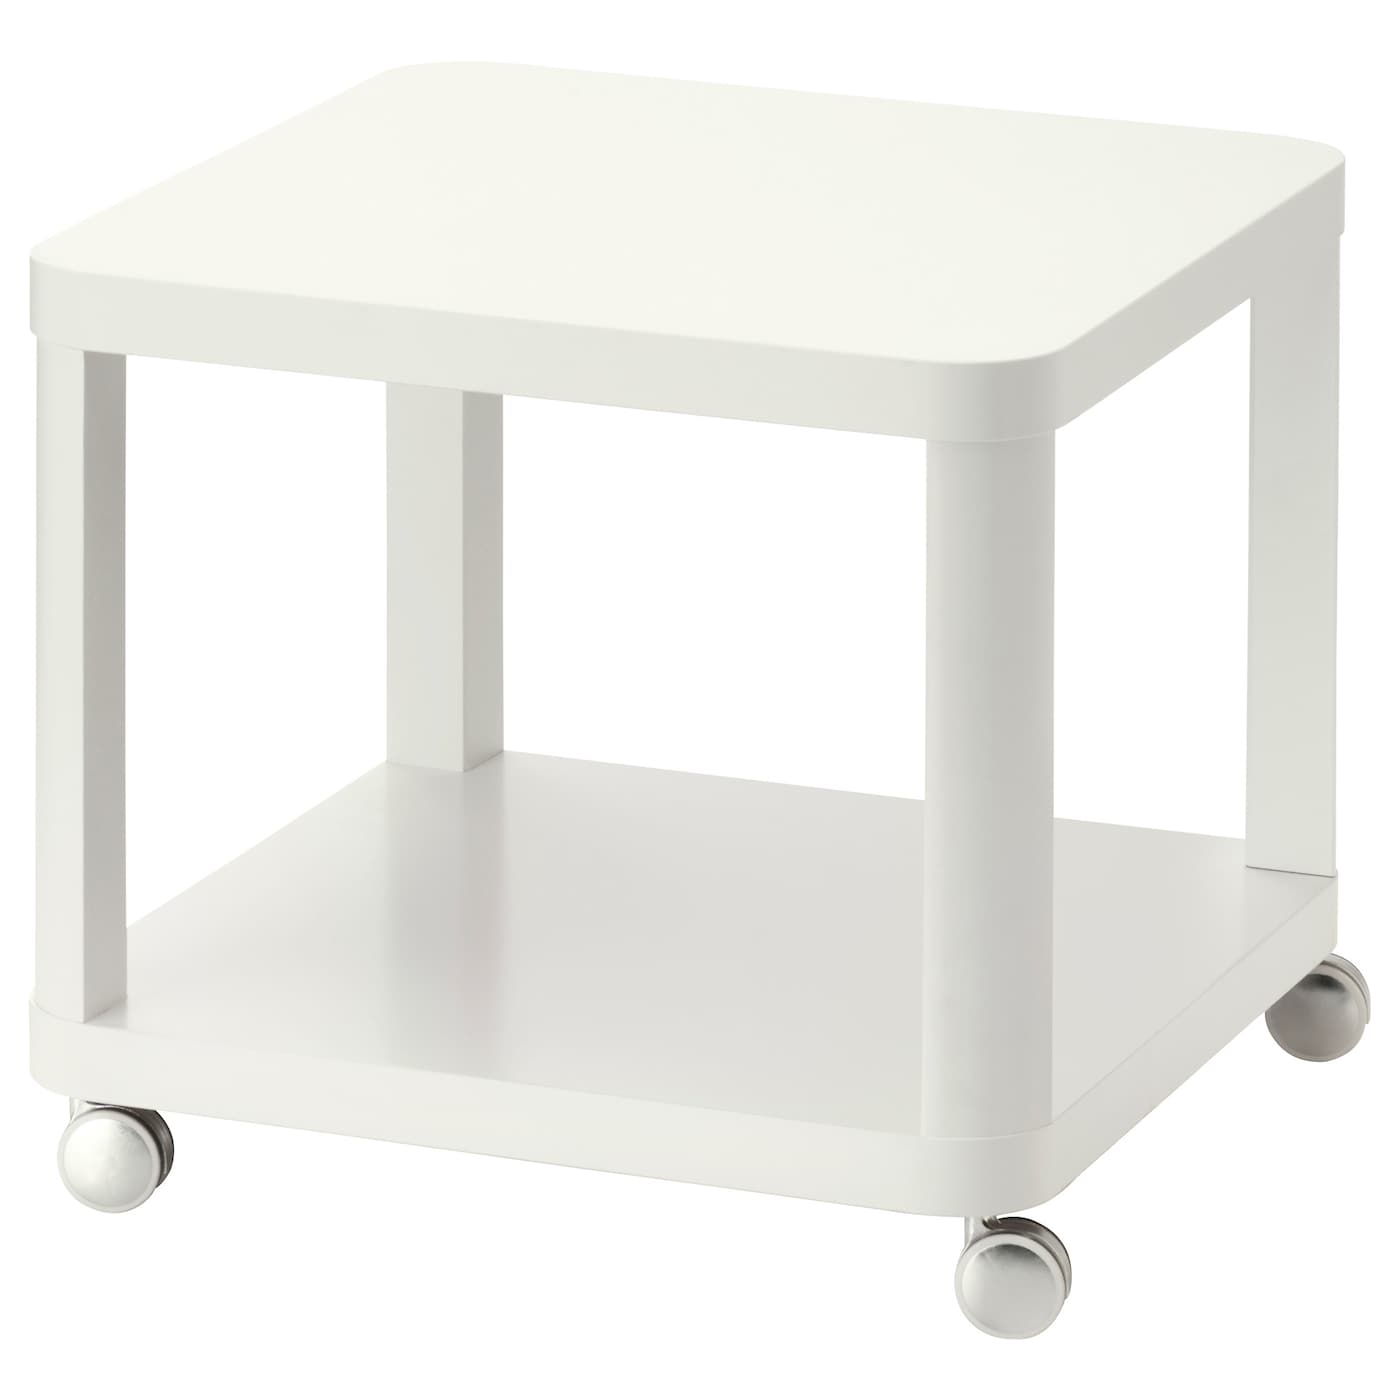 100 Génial Suggestions Table Basse Ikea Roulette